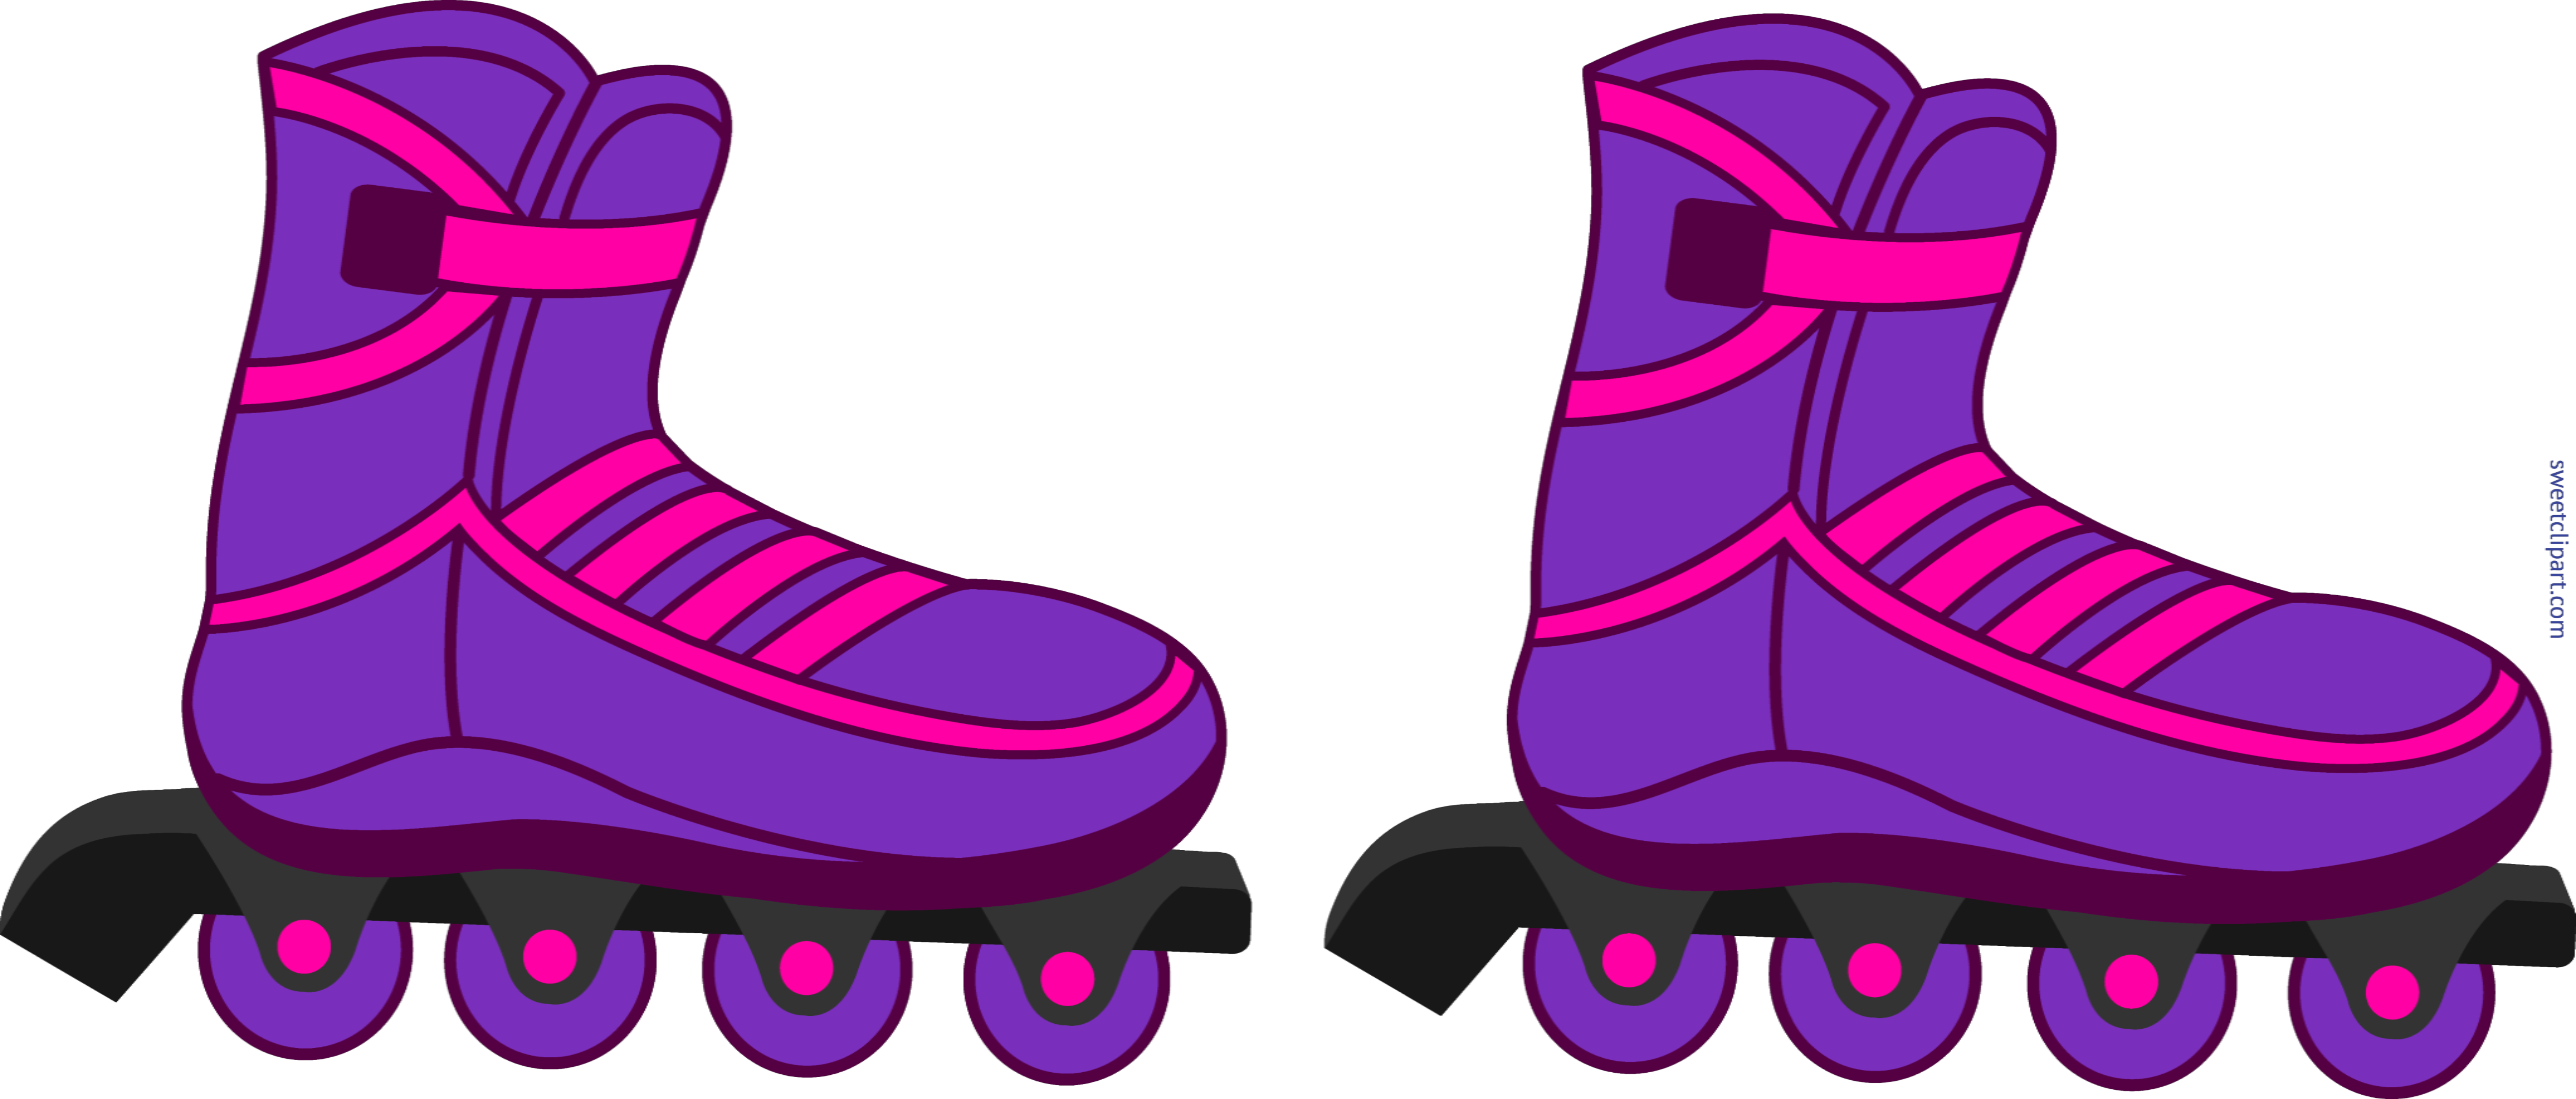 Rollerblades purple clip art. Person clipart roller skating